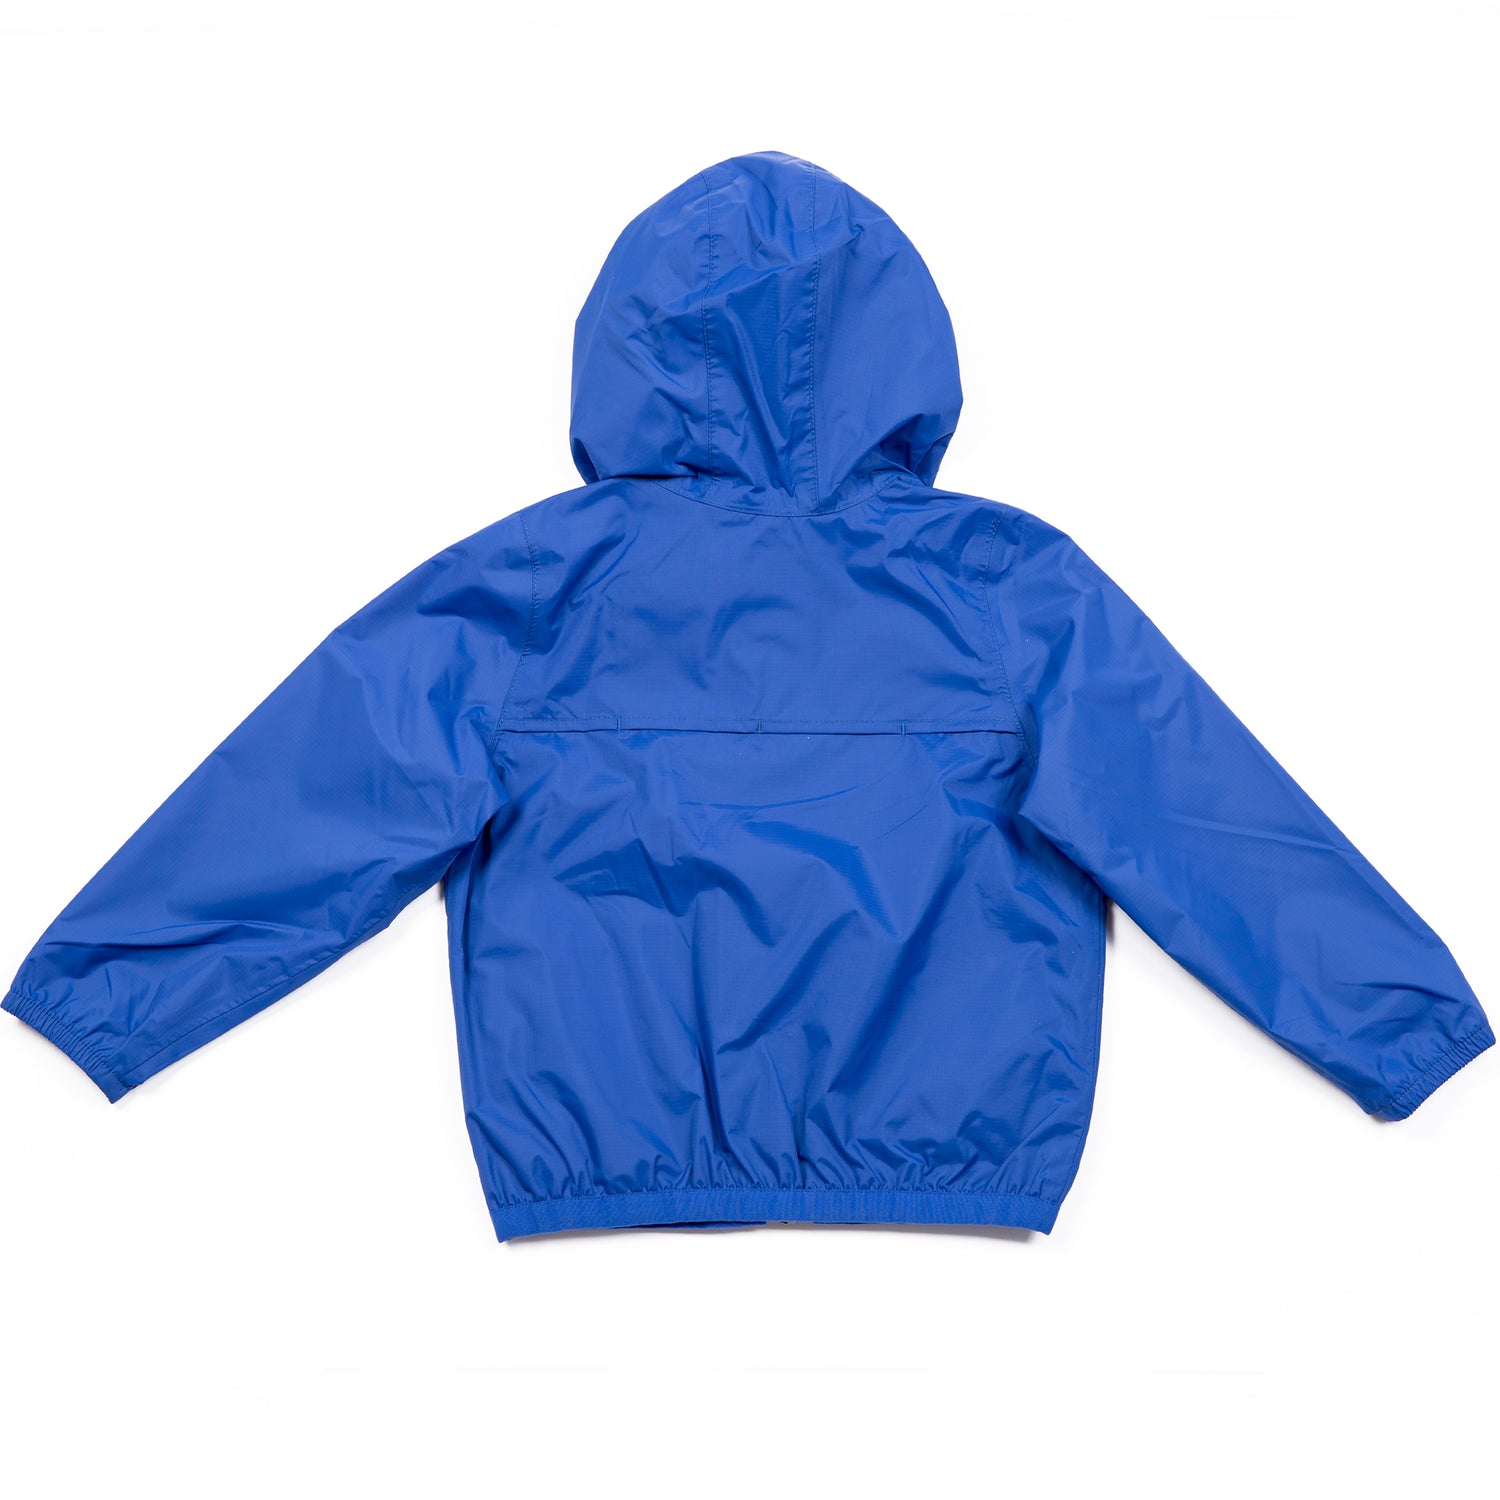 K-Way Infant Le Vrai 3.0 Claudine Jacket Blue Royal